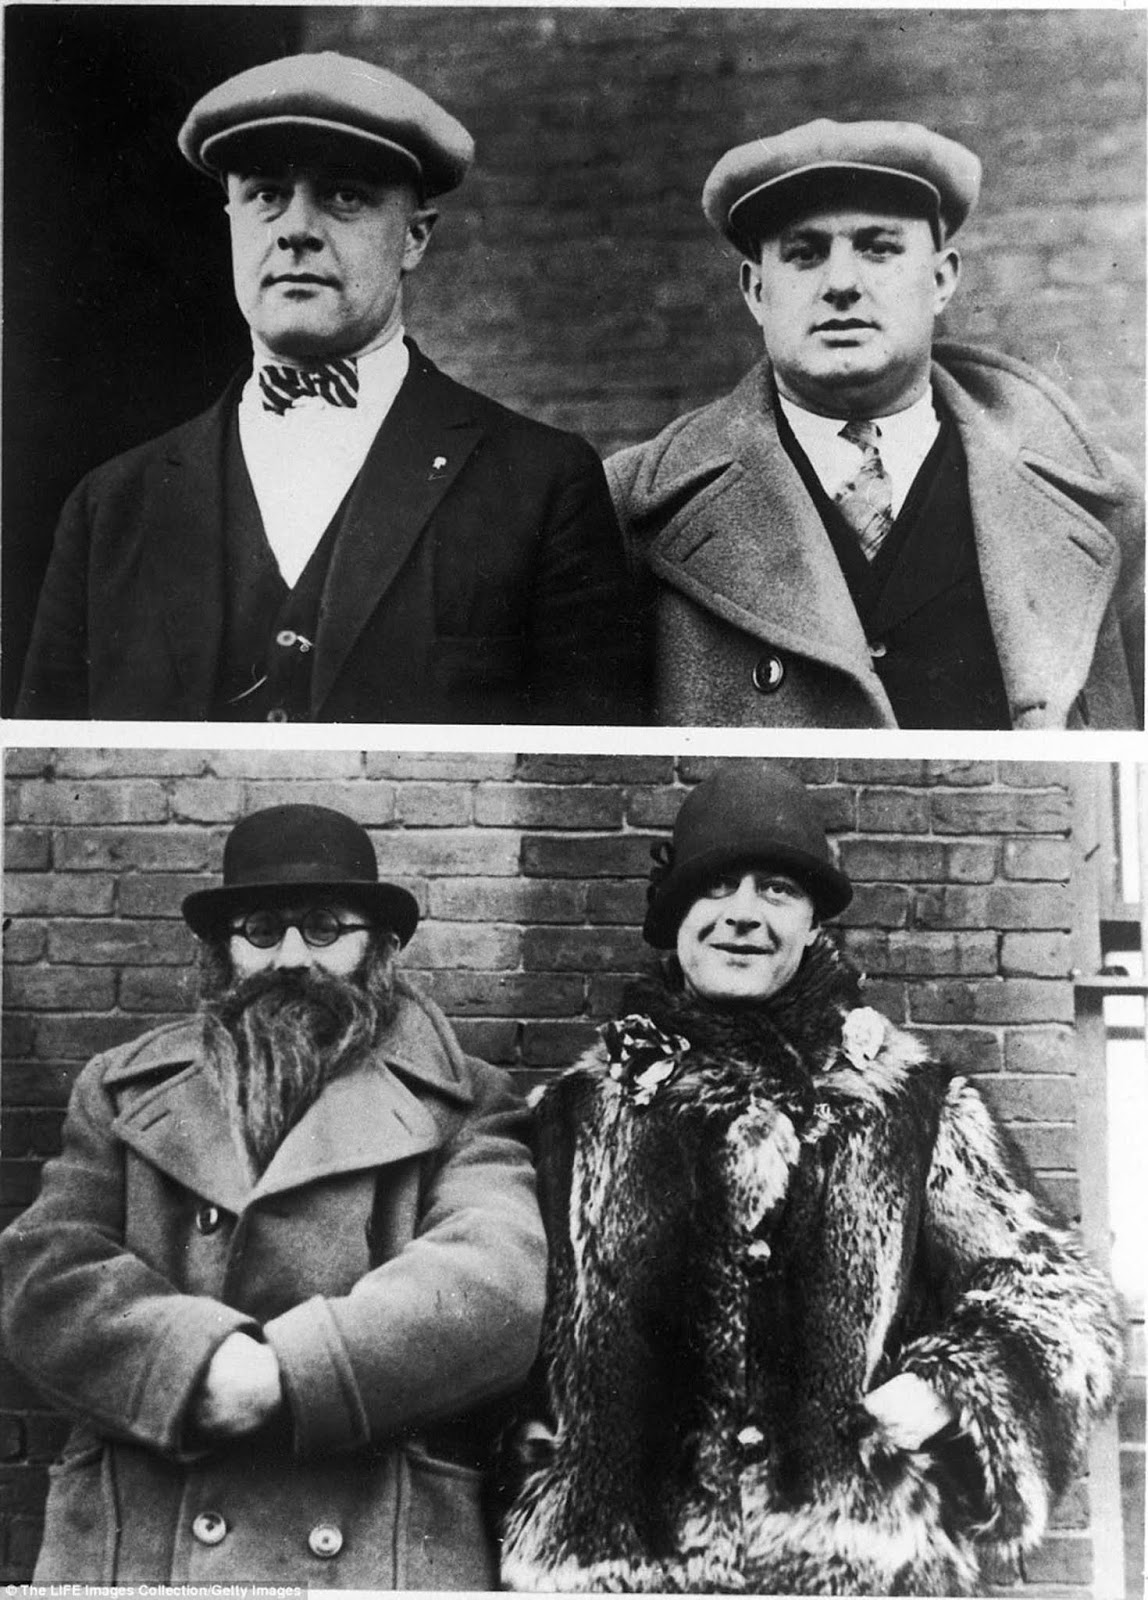 Prohibition-era policemen Moe Smith (on the left in top picture, on the right on the bottom picture) and Izzy Einstein (on the right in the top picture, on the left in the bottom picture). The pair would use disguises to infiltrate speakeasies.